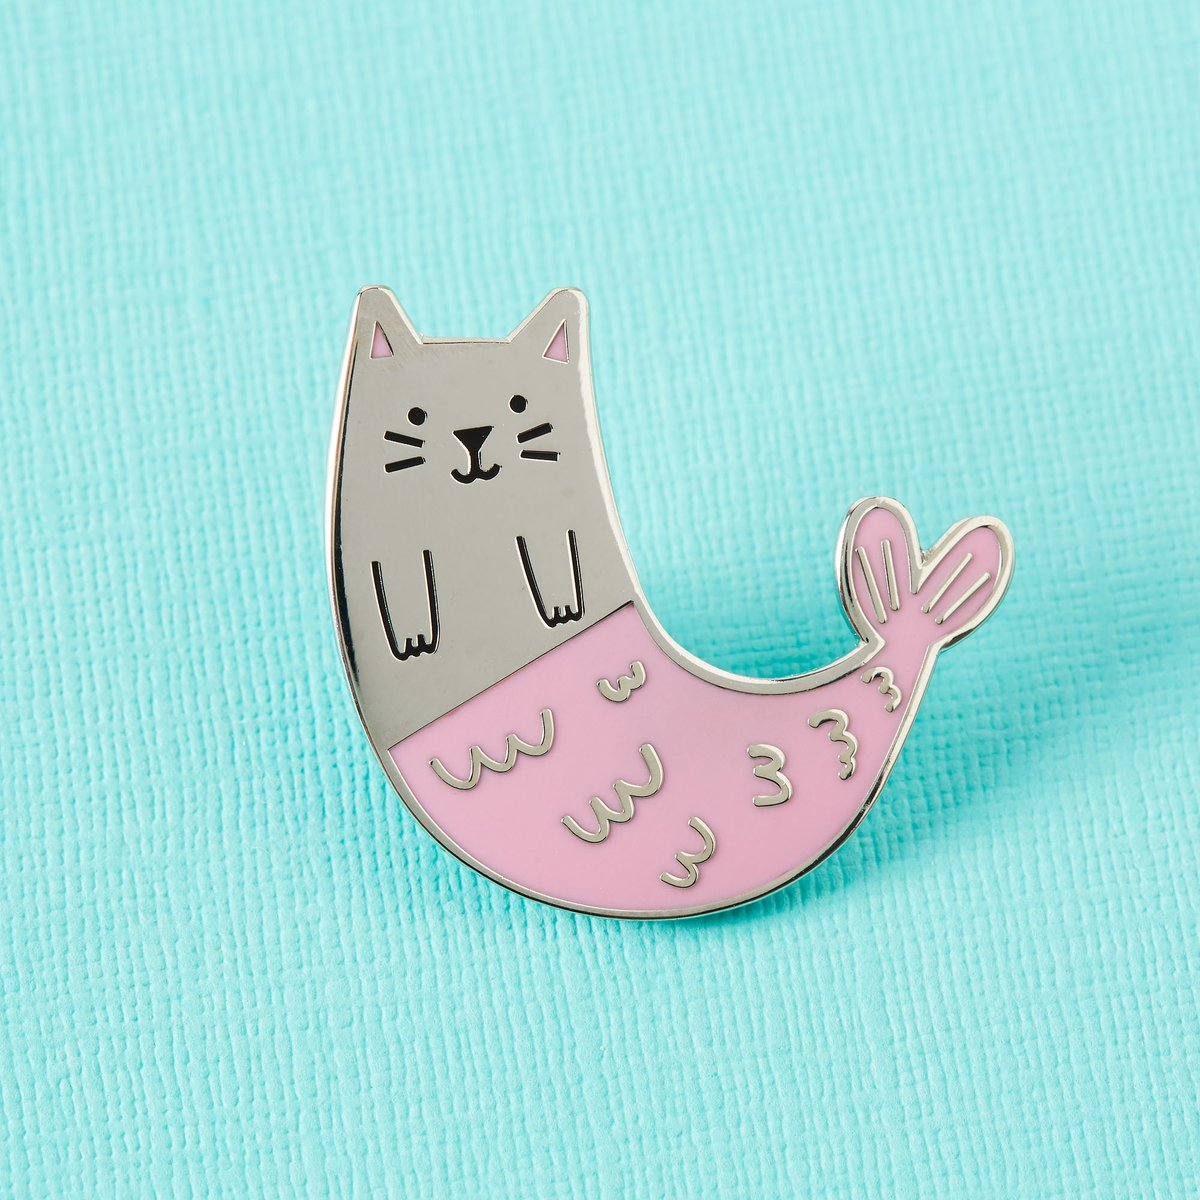 What could be better than a kitty? A mystical Merkitty.  RT with an emoji if your cat would look cute AF with a cosy knitted mermaid tail. http://bit.ly/PP_PurrmaidPin   #enamelpins #catlady #catlovers pic.twitter.com/zbm7j8gZPc